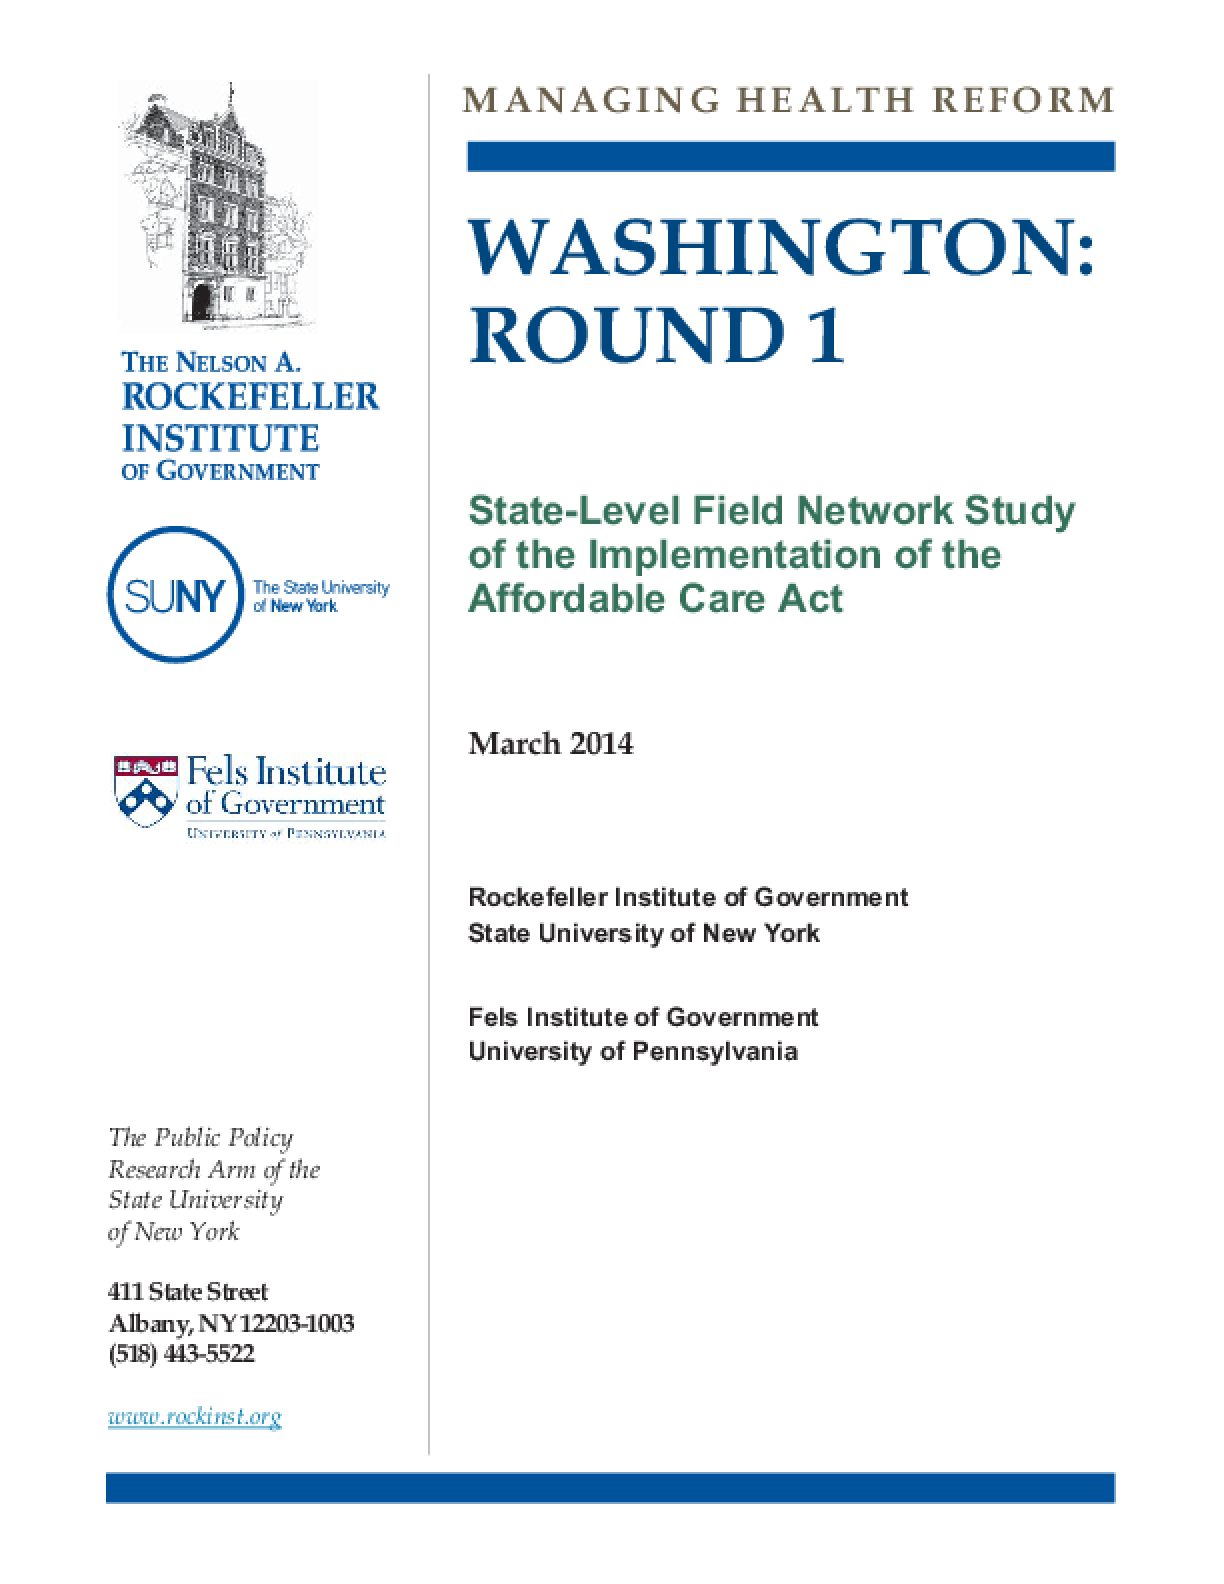 Washington: Round 1 - State-Level Field Network Study of the Implementation of the Affordable Care Act